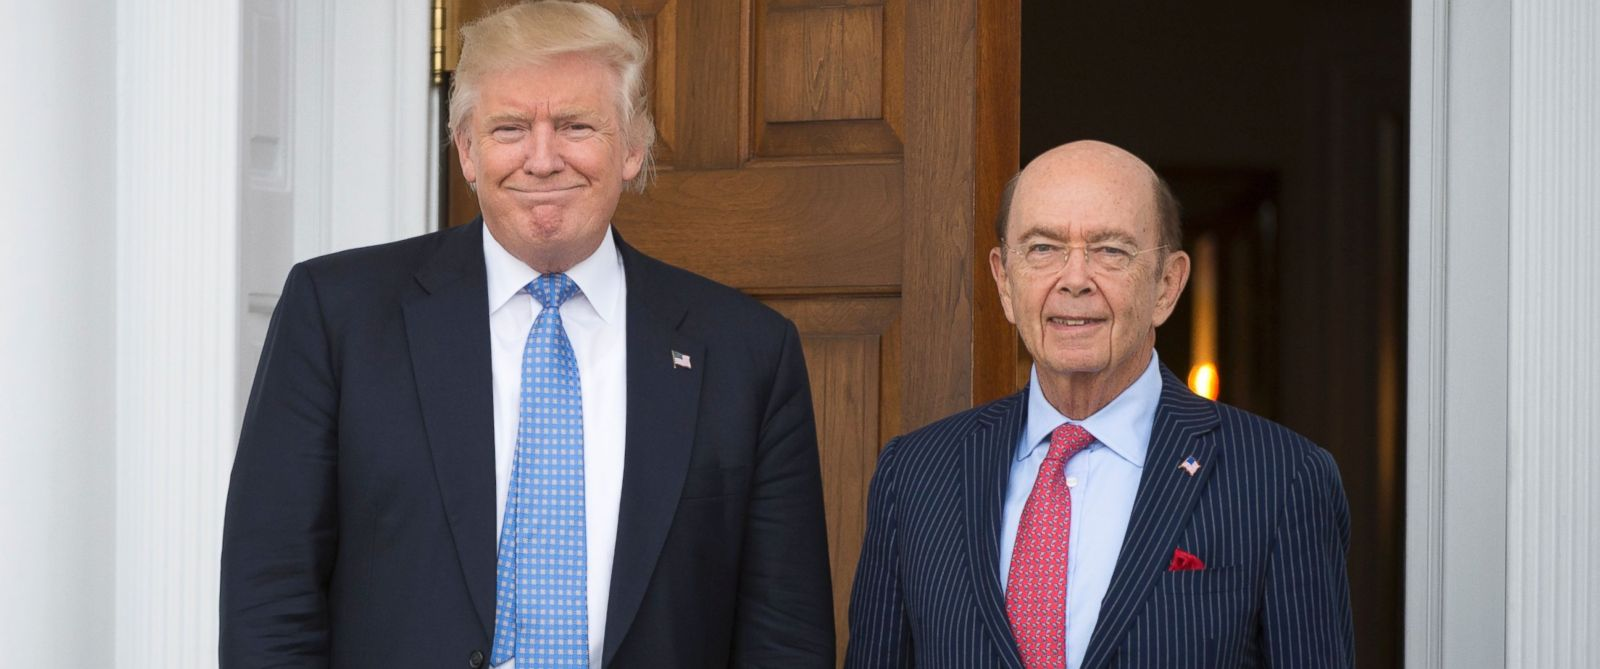 PHOTO: President-elect Donald Trump meets with Wilbur Ross at the clubhouse of Trump National Golf Club, Nov. 20, 2016 in Bedminster, New Jersey.